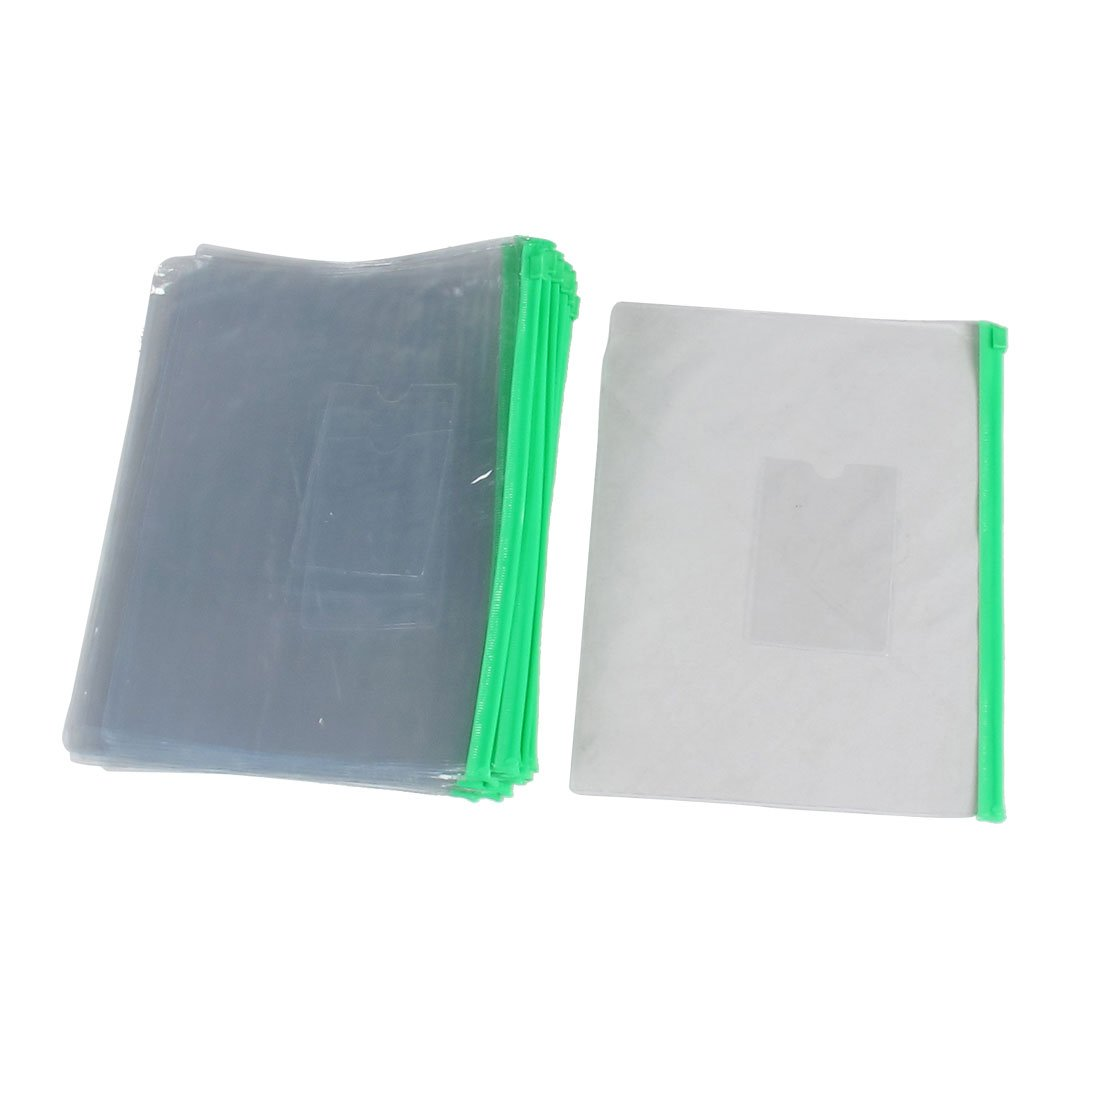 New And Hot 20 Pcs Green Clear Size A5 Paper Slider Ziplock Closure Files Bags